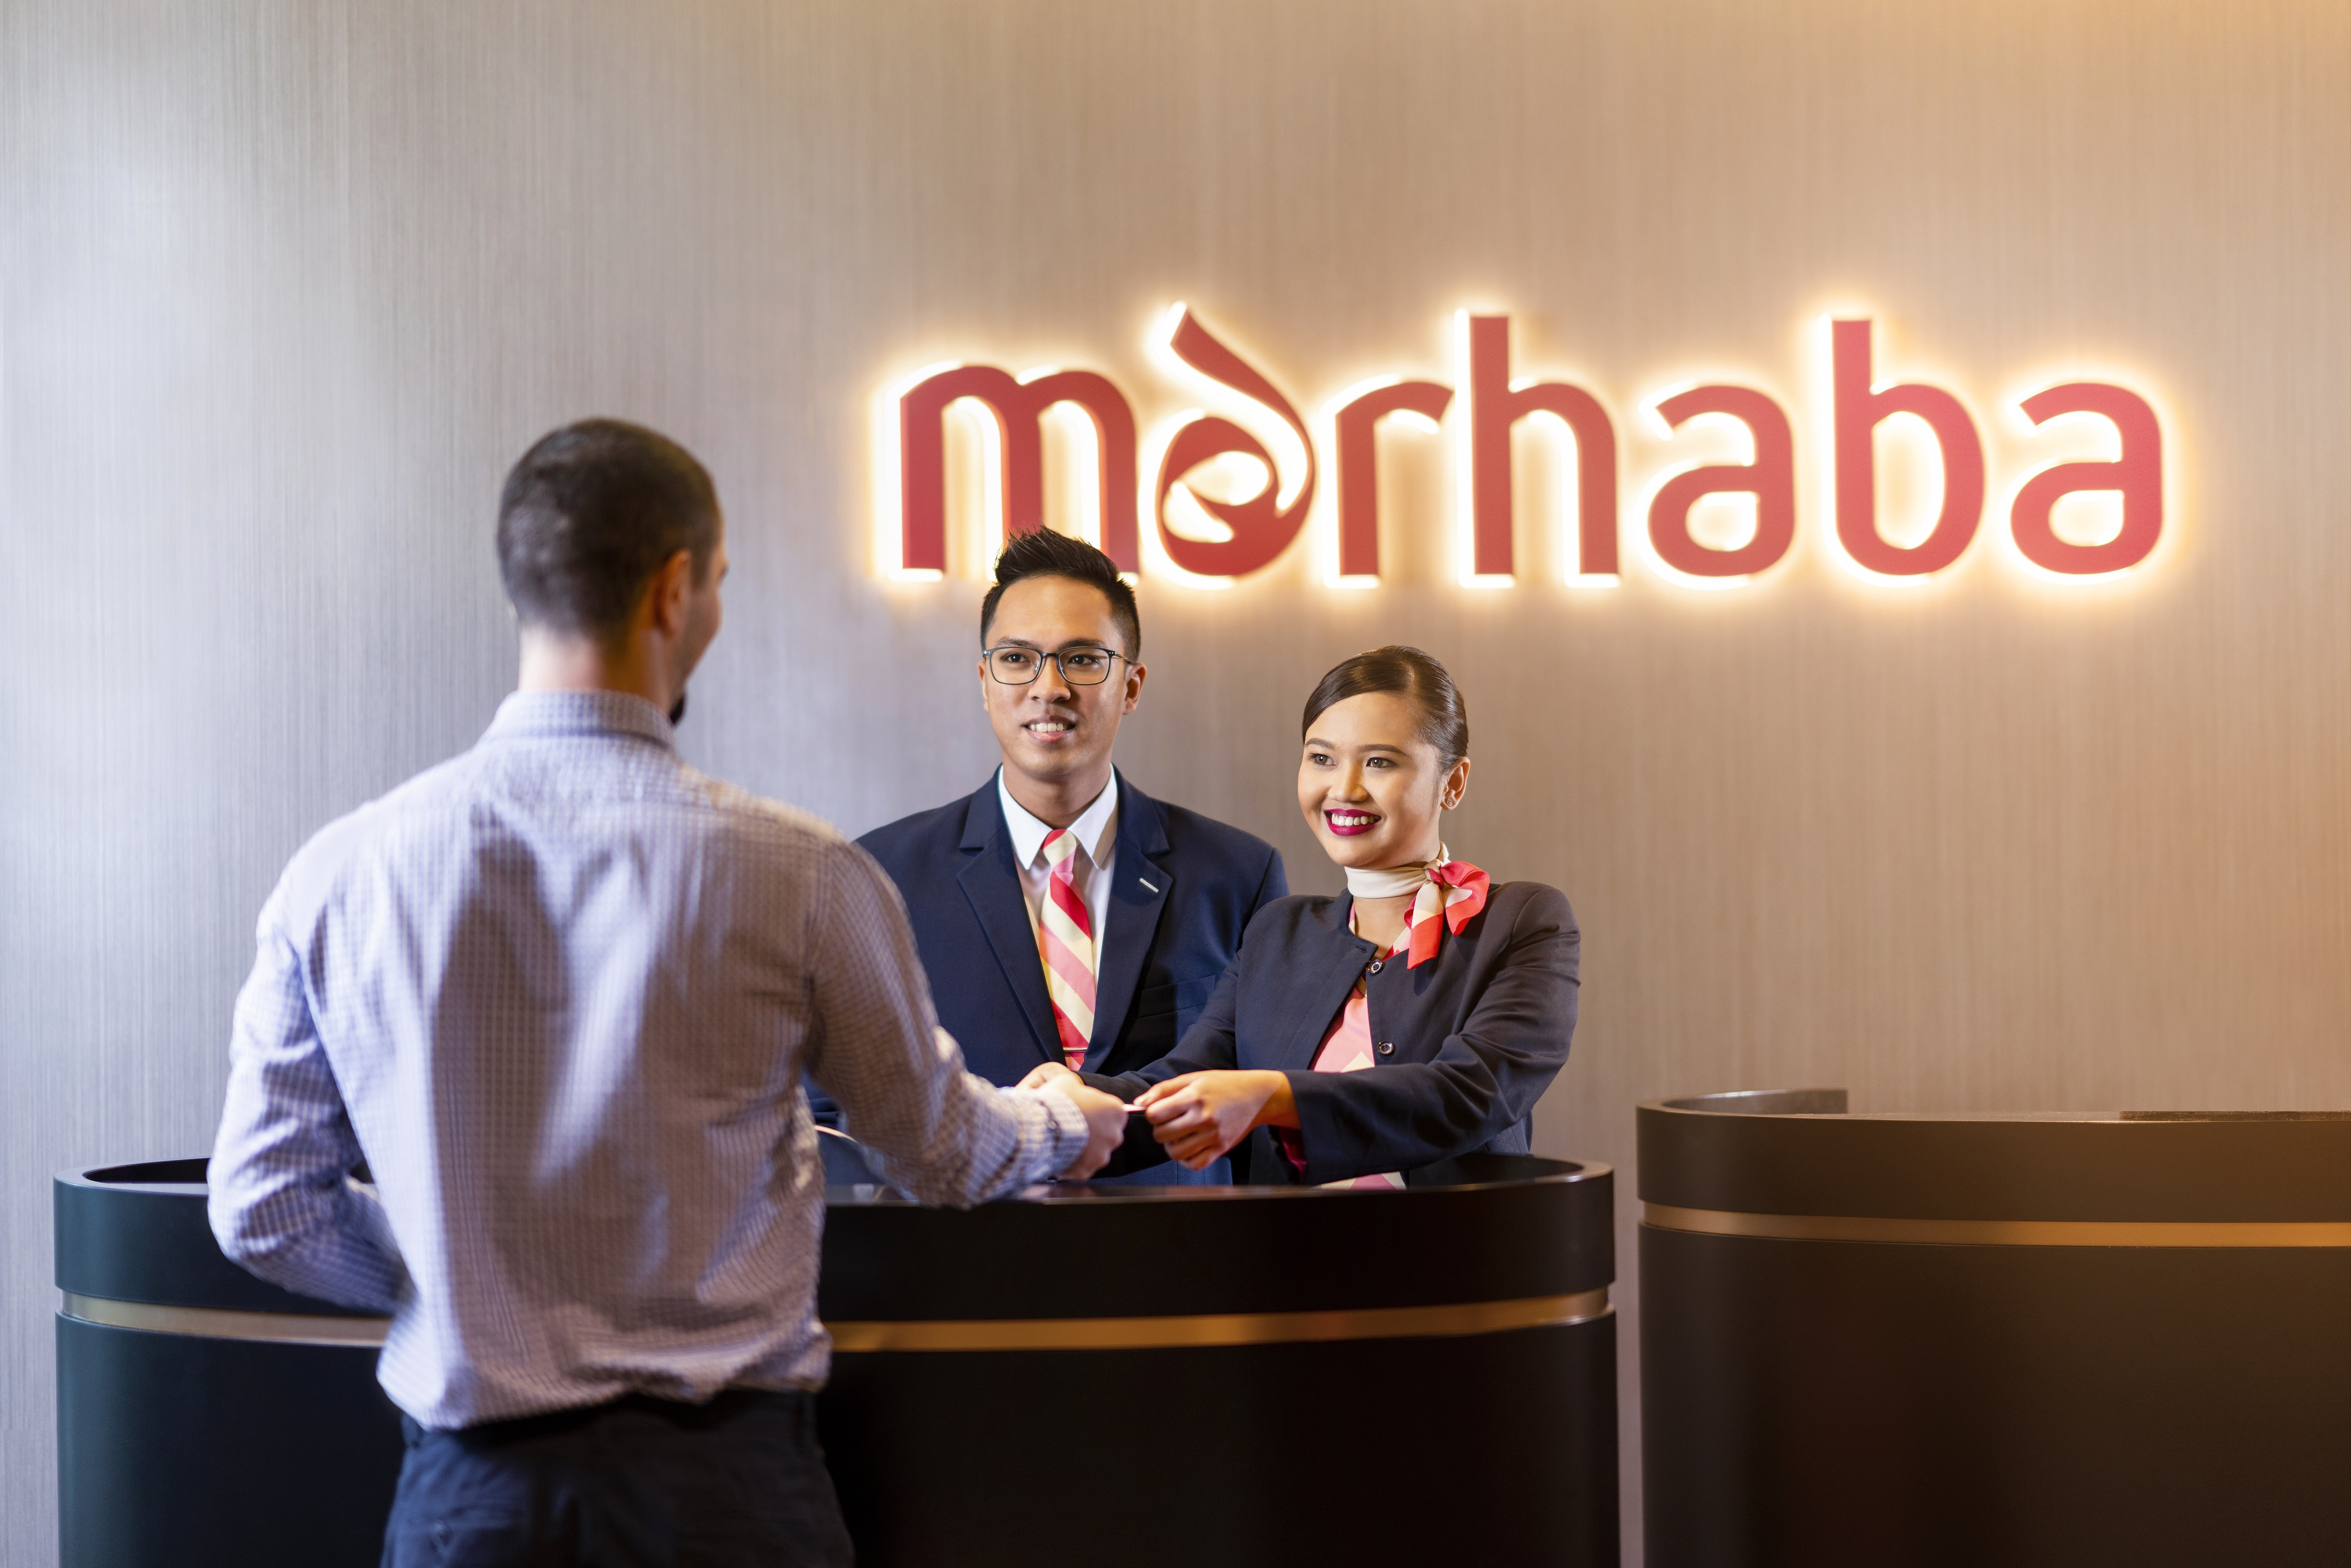 marhaba adds Singapore to its global network; opens new airport lounge at Changi Airport